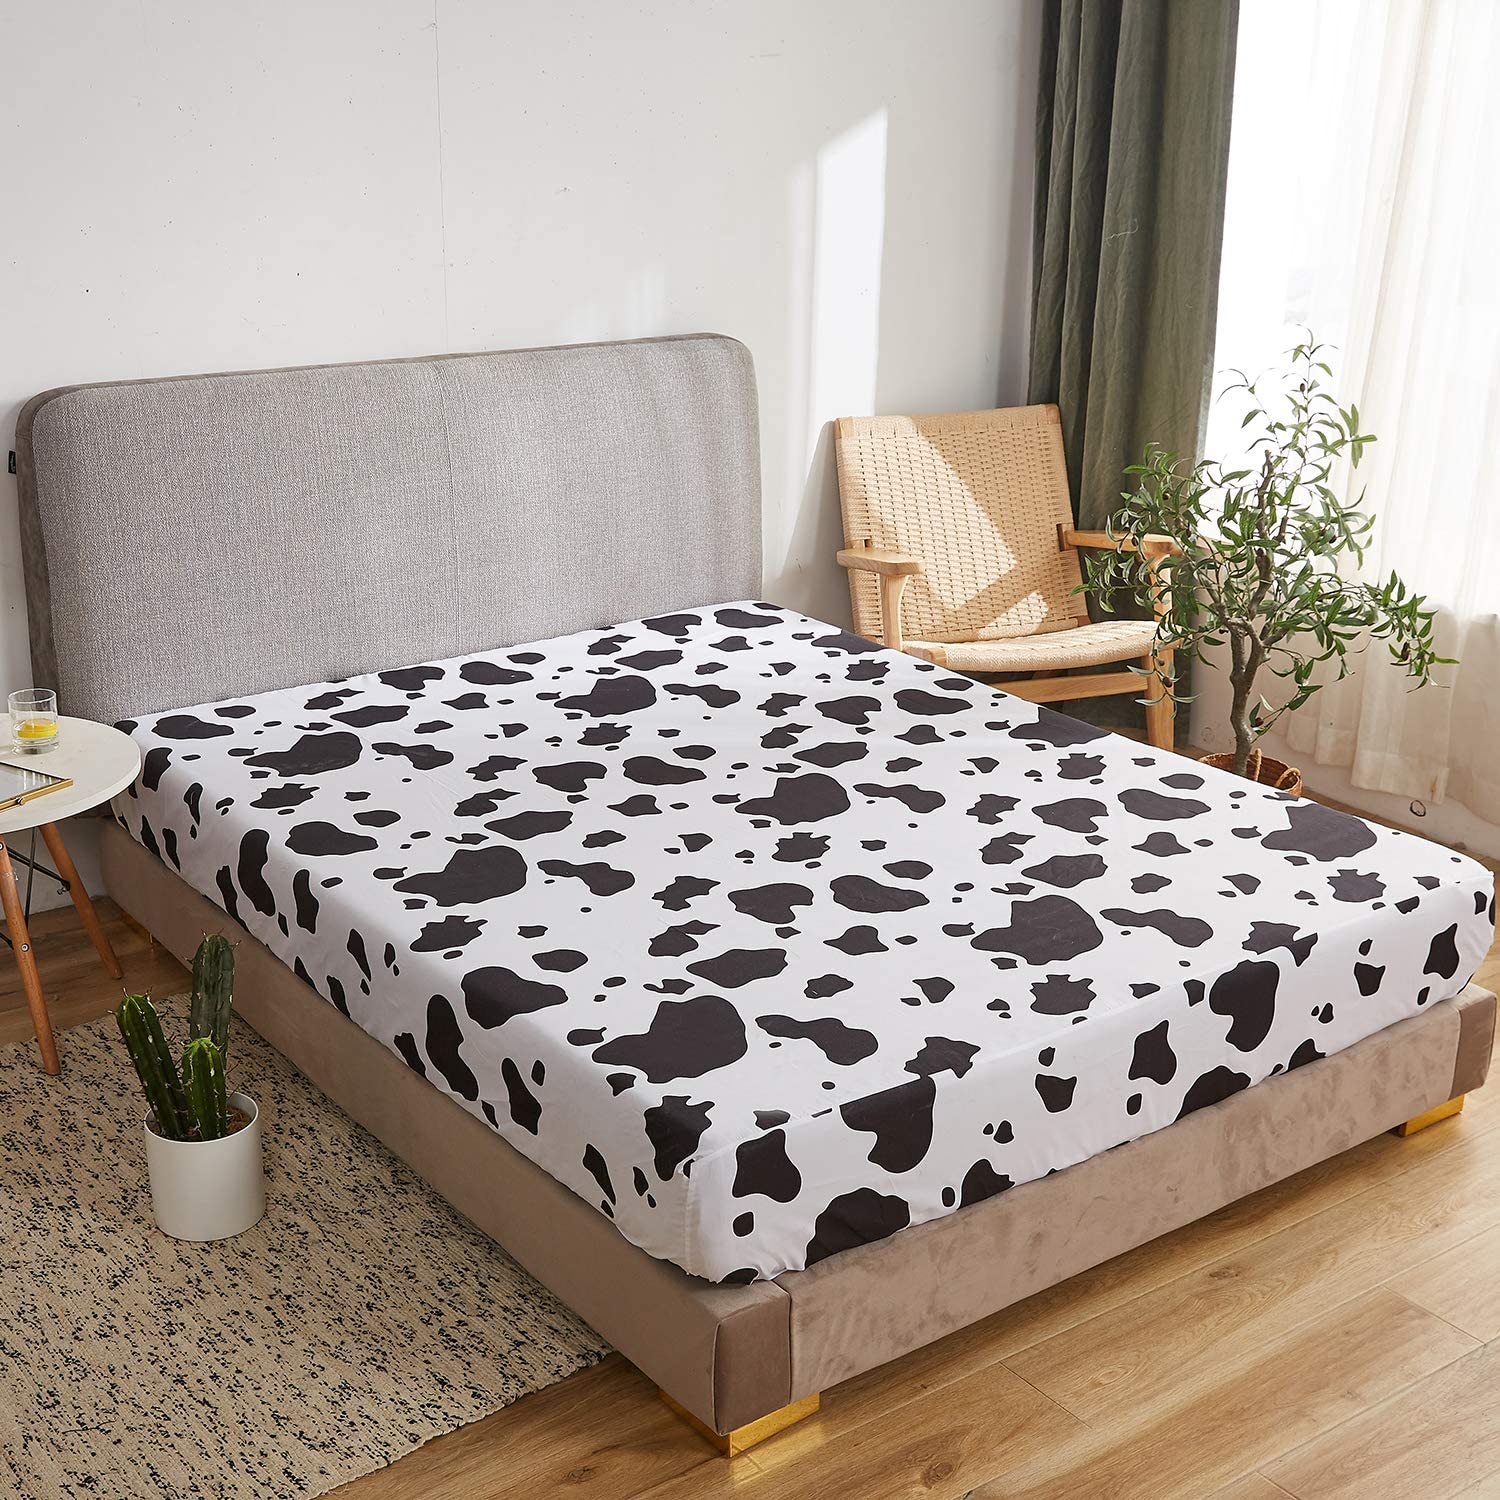 Twin Mengersi Cow Bedding Duvet Cover with Fitted Sheet 4 Piece Set-Animal Pattern Comforter Cover for Kids Boys Girls Black White Color